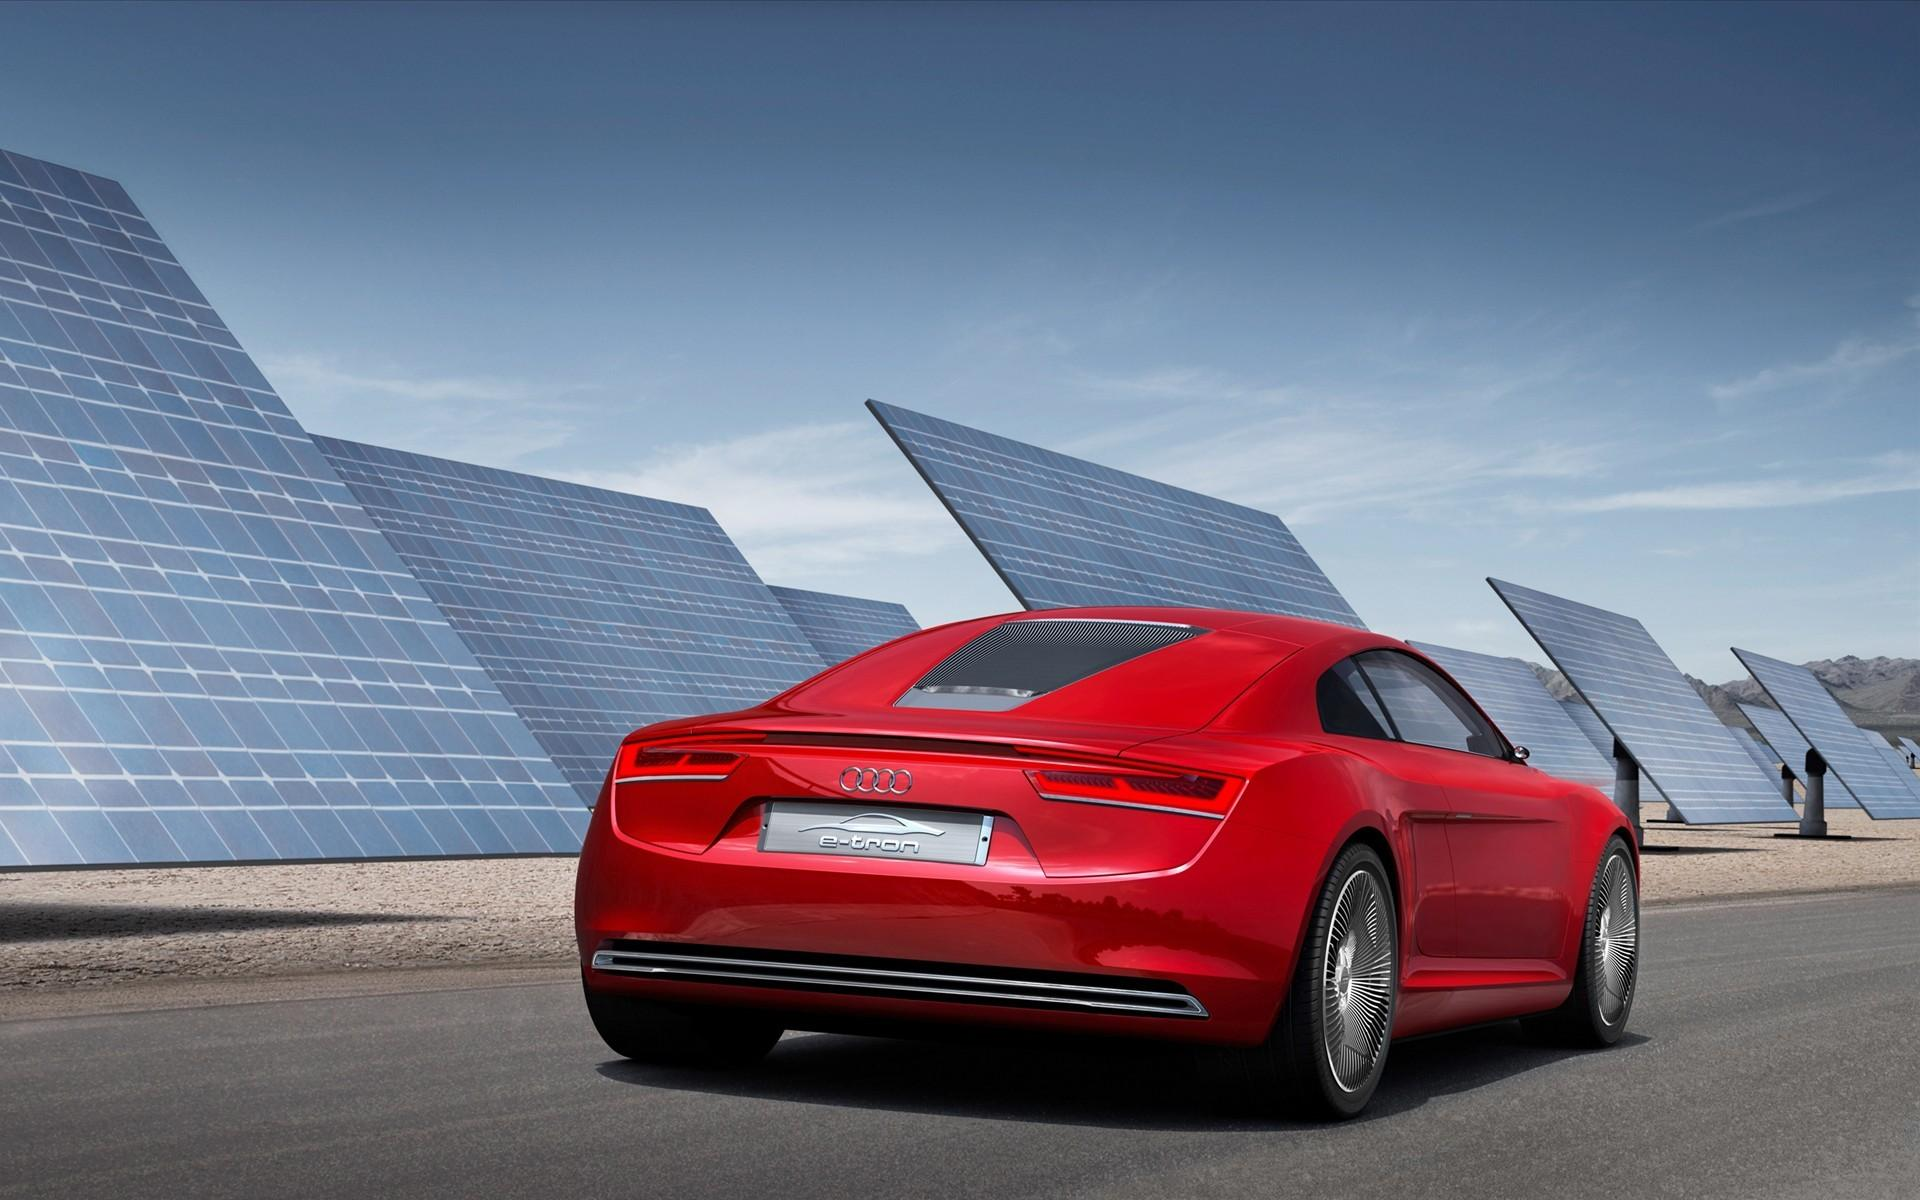 audi-e-tron-at-the-solar-panels